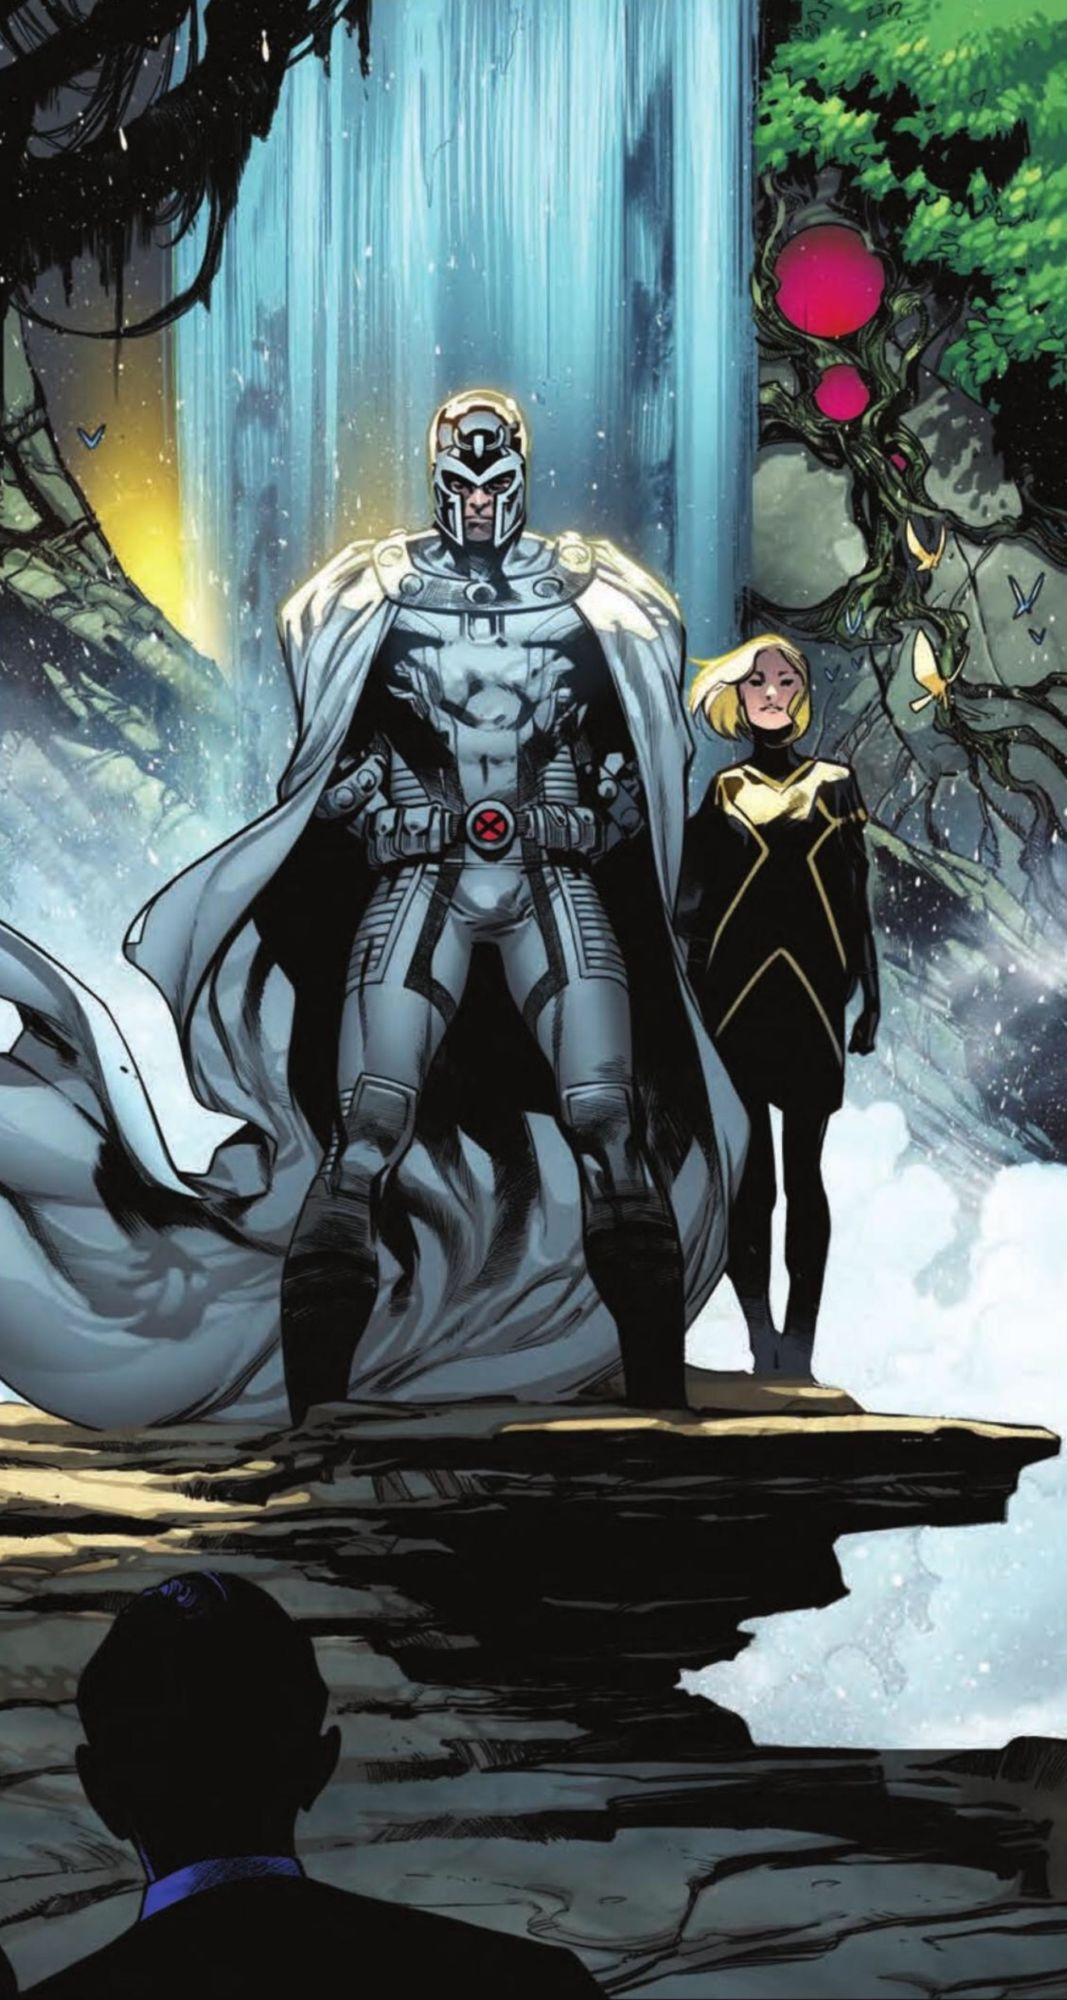 A Look Inside House Of X And Powers Of X Fear The Future Marvel Comics Art Comics Artwork Marvel Art